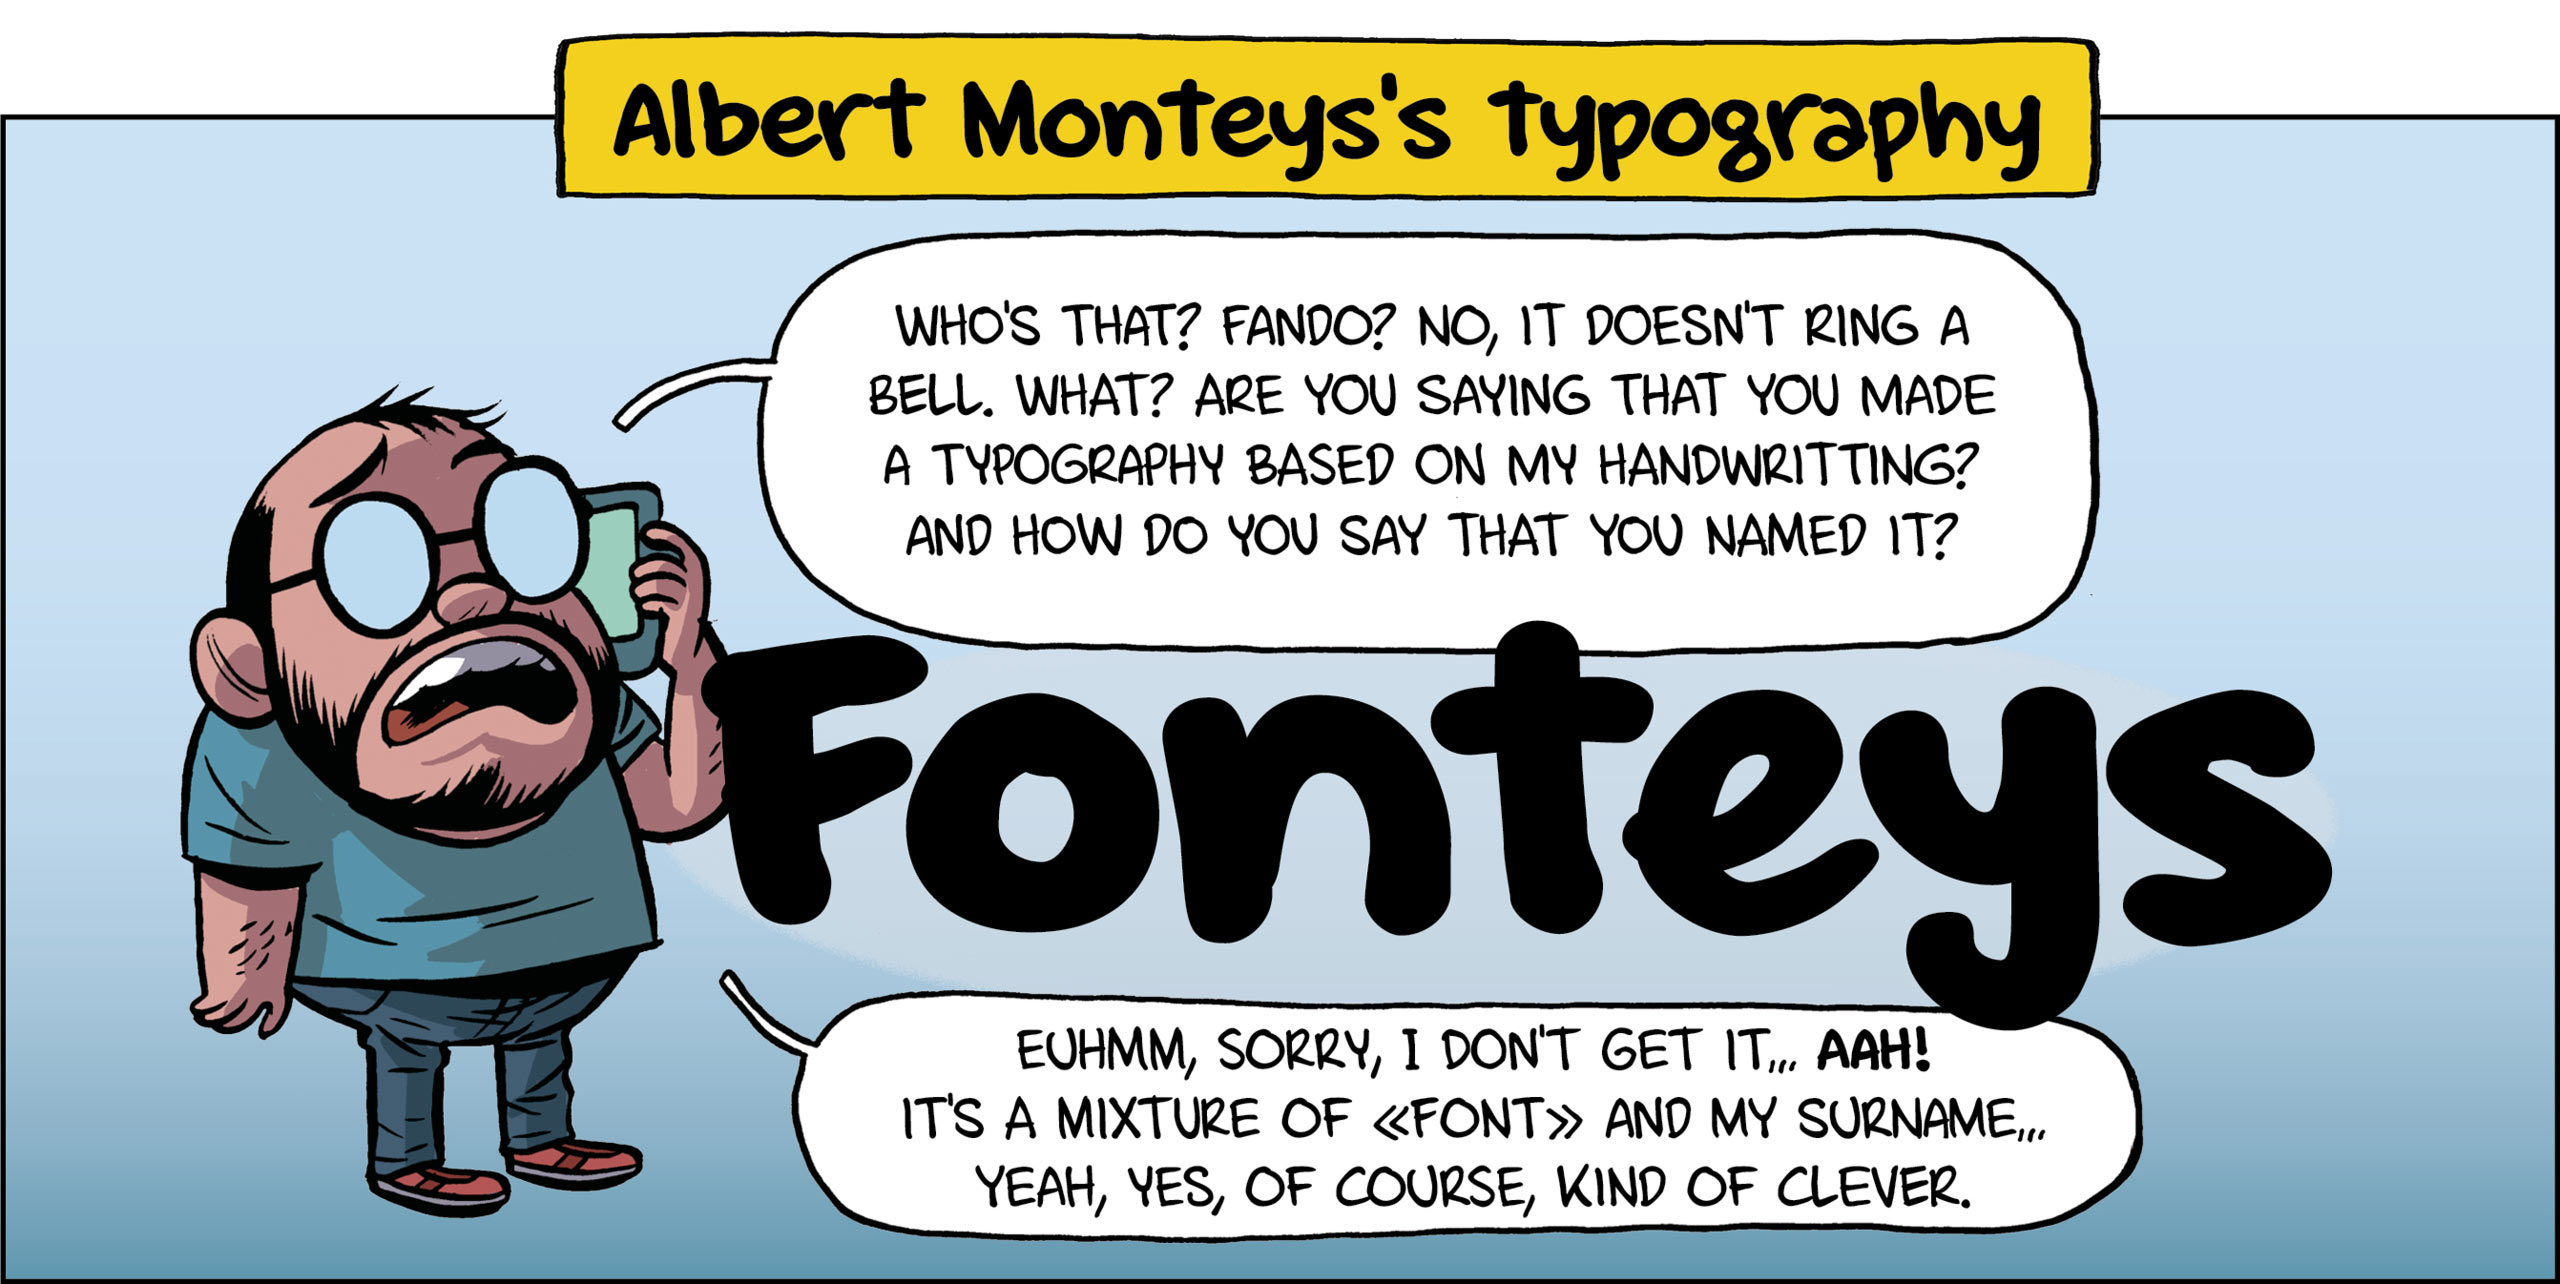 Albert Monteys's typography